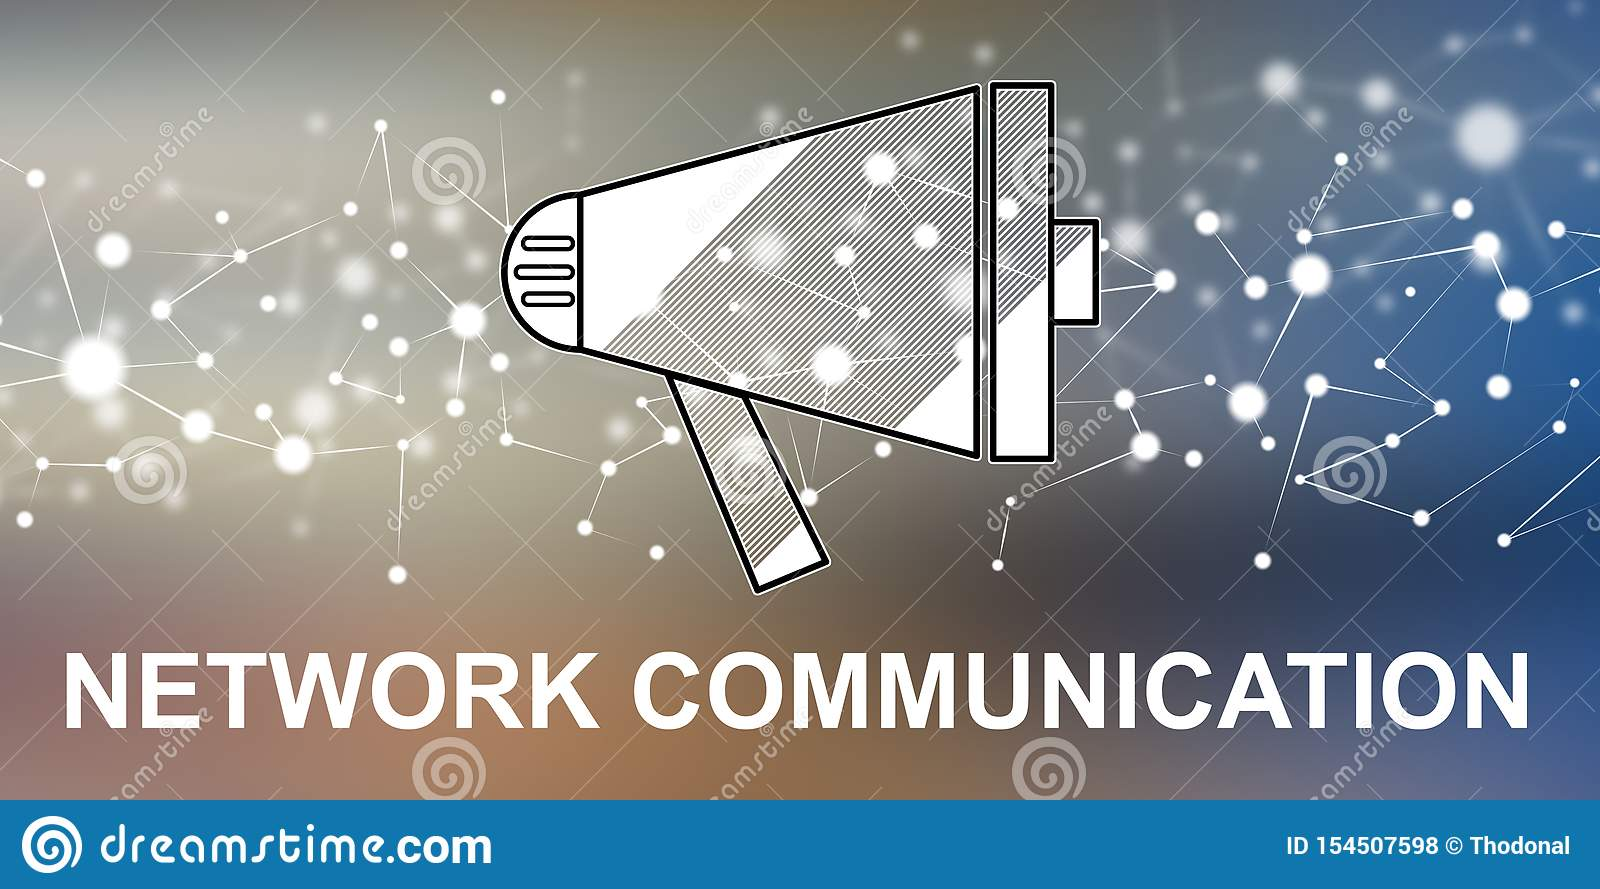 Concept of network communication